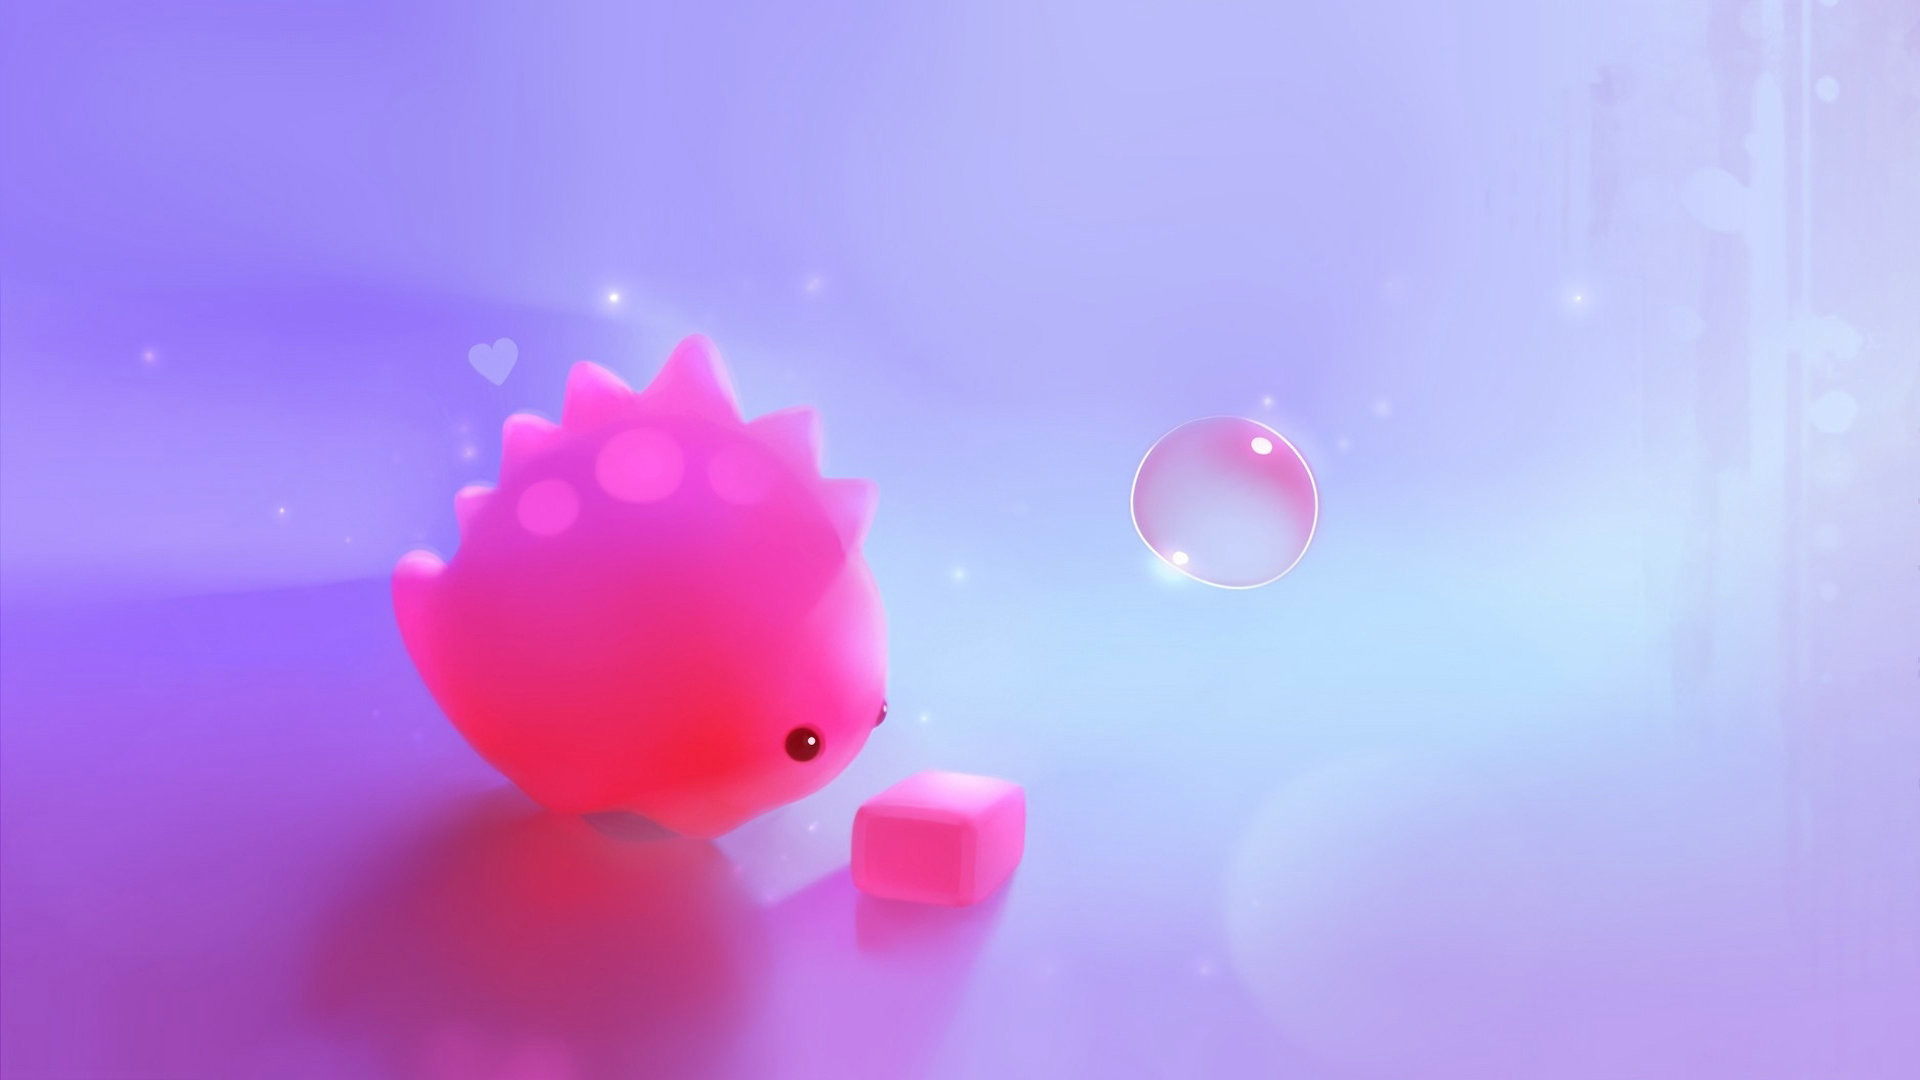 cute wallpapers for laptop (70+ images)